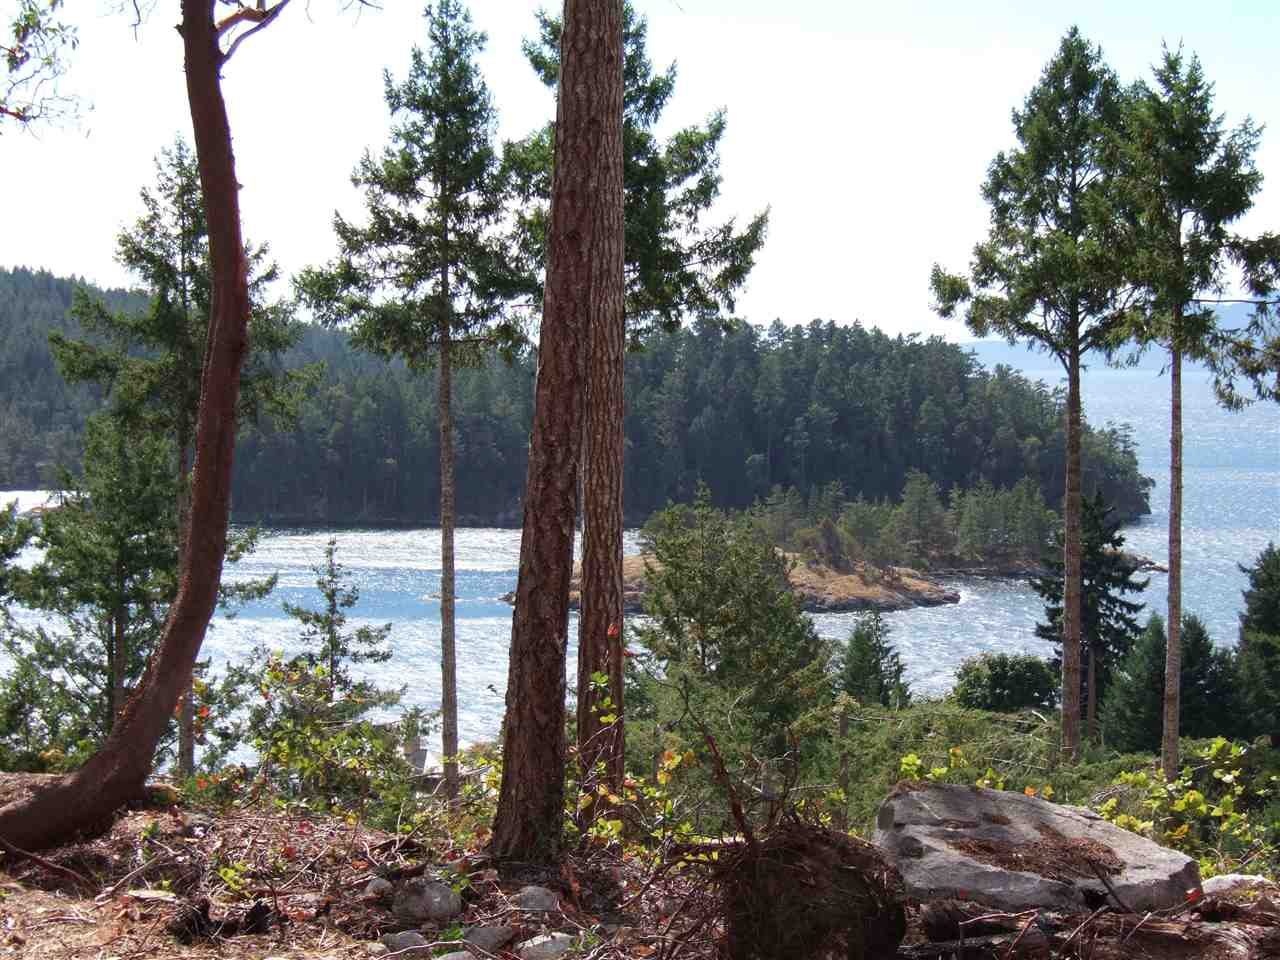 Exclusive Pender Harbour Landing Development Freehold, Non-Strata Ownership. Practical Building Guidelines w/no mandatory start date for construction. Awesome Outlook from bluff setting on 1.41 acres oceanfront.